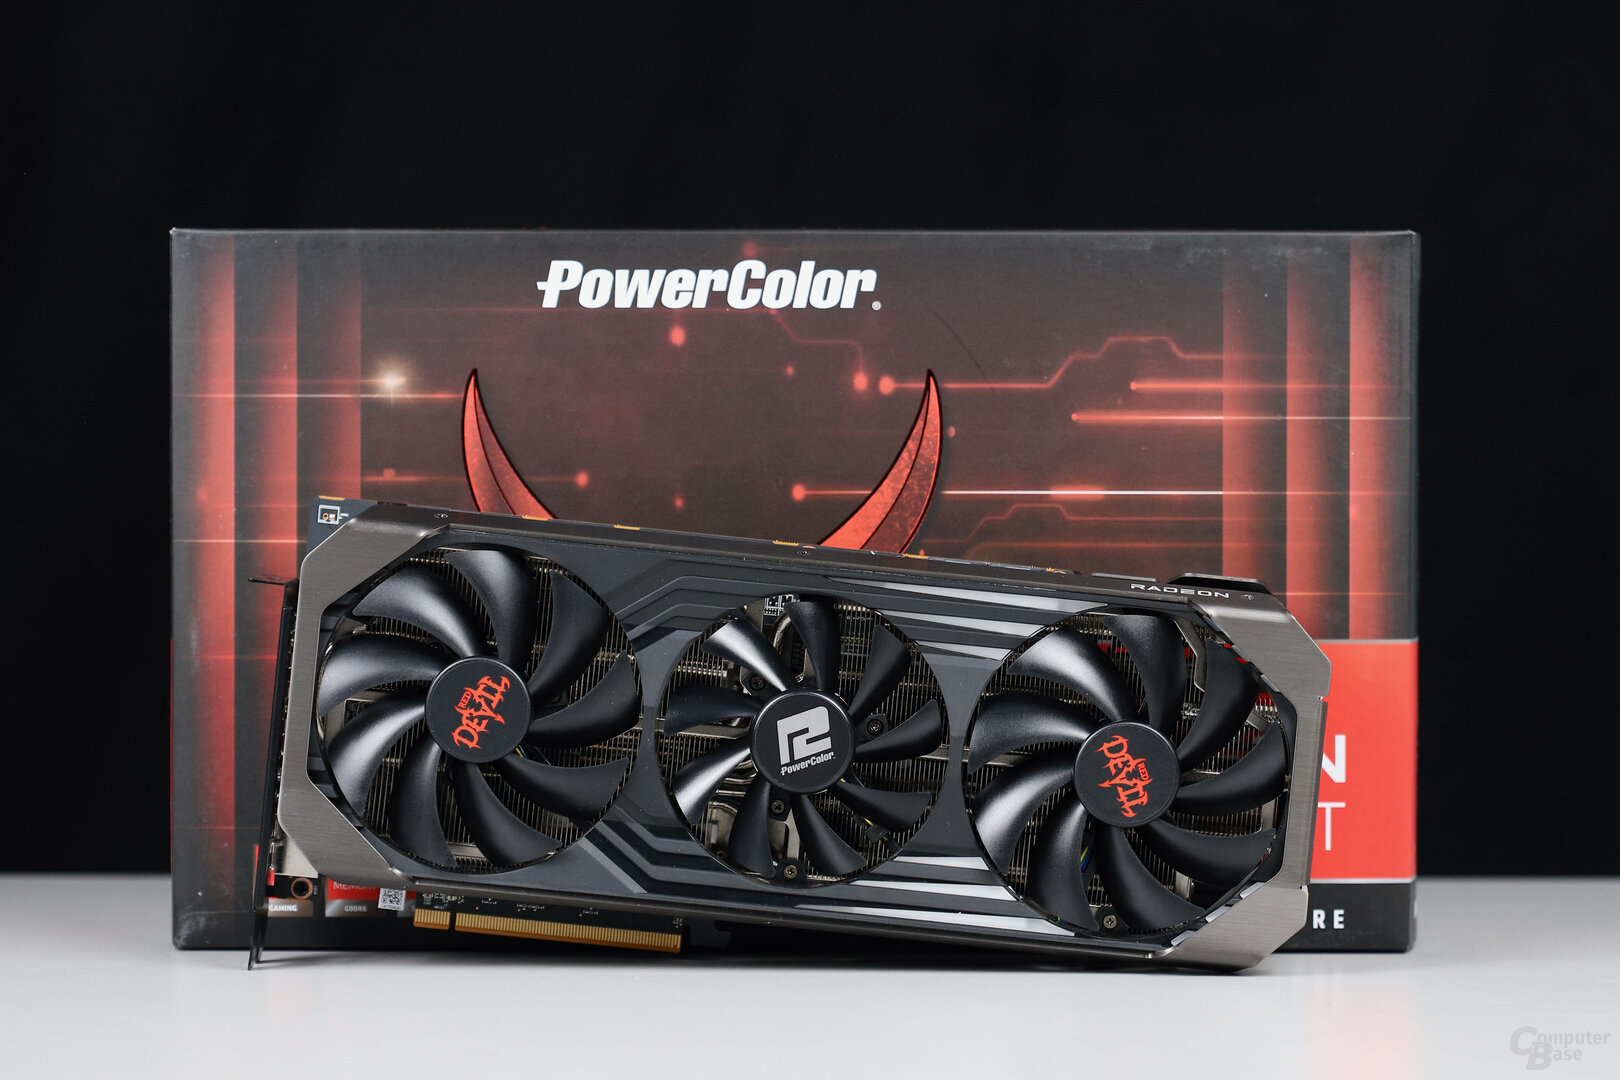 Die PowerColor Radeon RX 6700 XT Red Devil